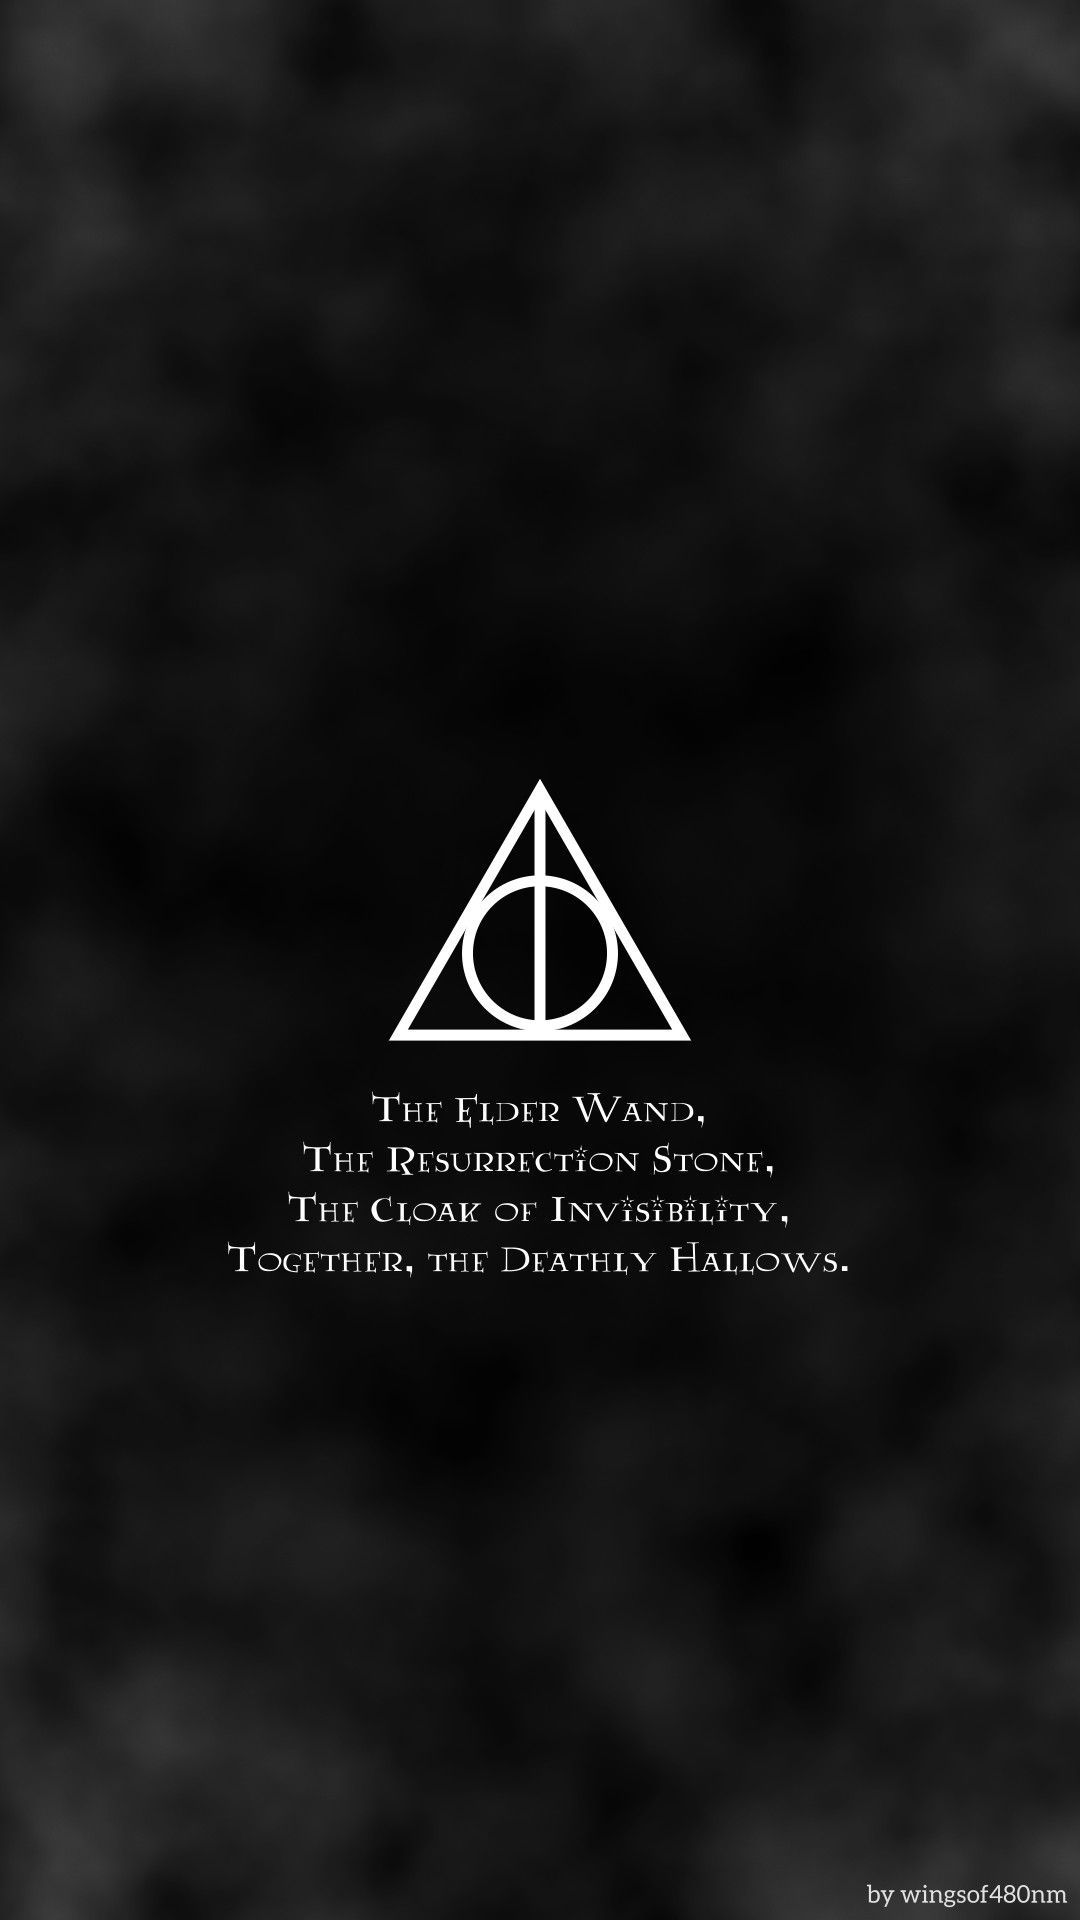 Harry Potter Wallpaper Hd Hupages Download Iphone Wallpapers In 2020 Harry Potter Wallpaper Phone Harry Potter Wallpaper Harry Potter Iphone Wallpaper